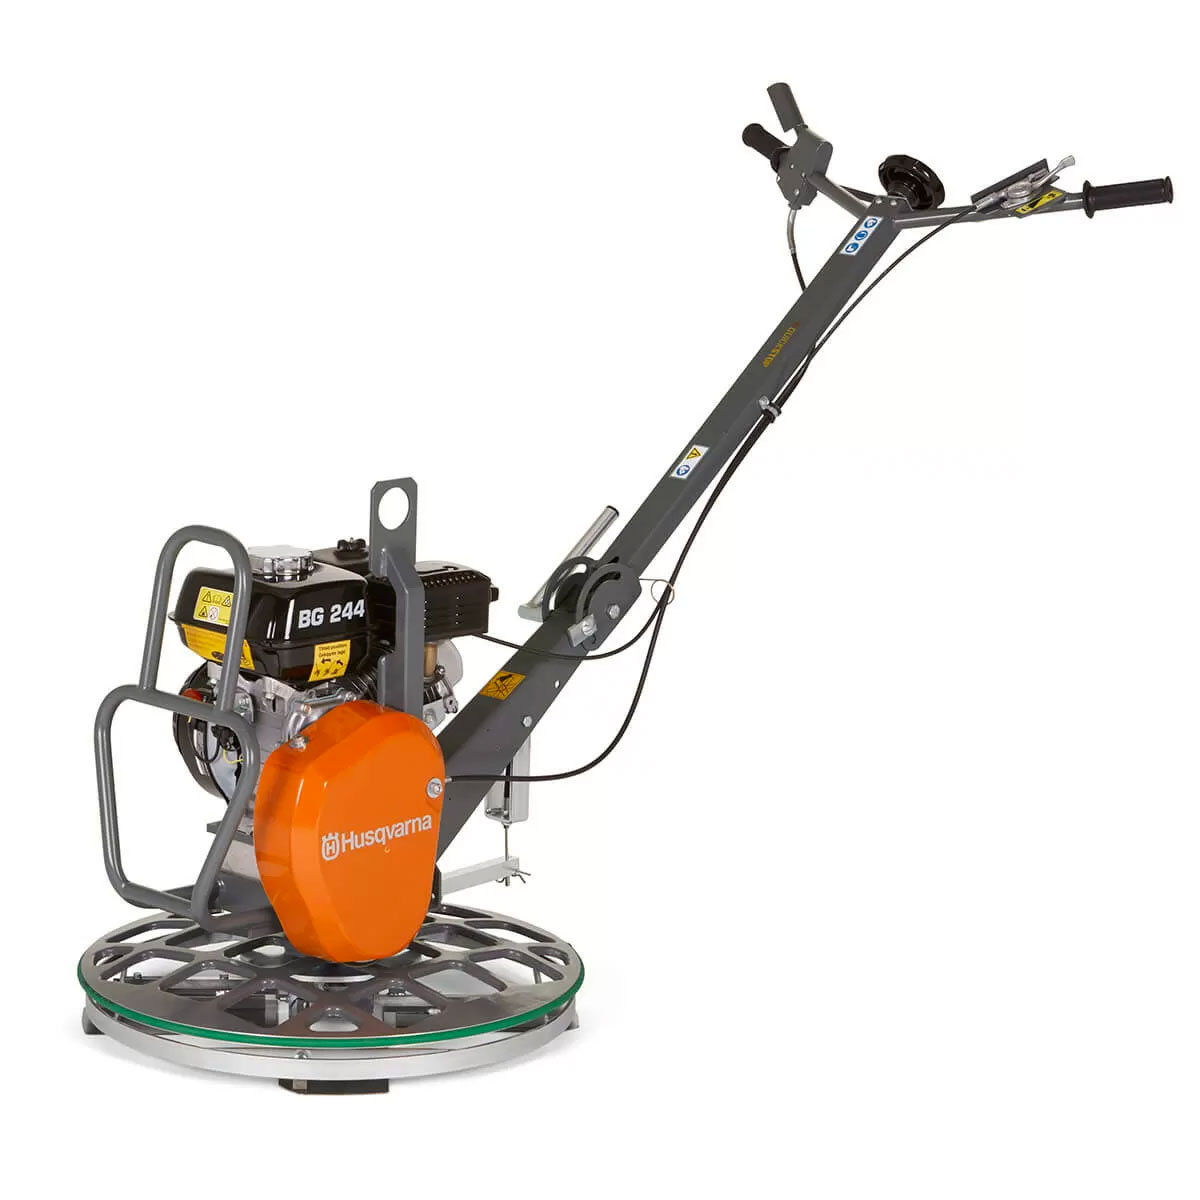 Husqvarna BG244 Concrete Placement Power Trowel F TP 23.6Inch 600mm Honda GX120 BG 244 967859301 Freight Inc